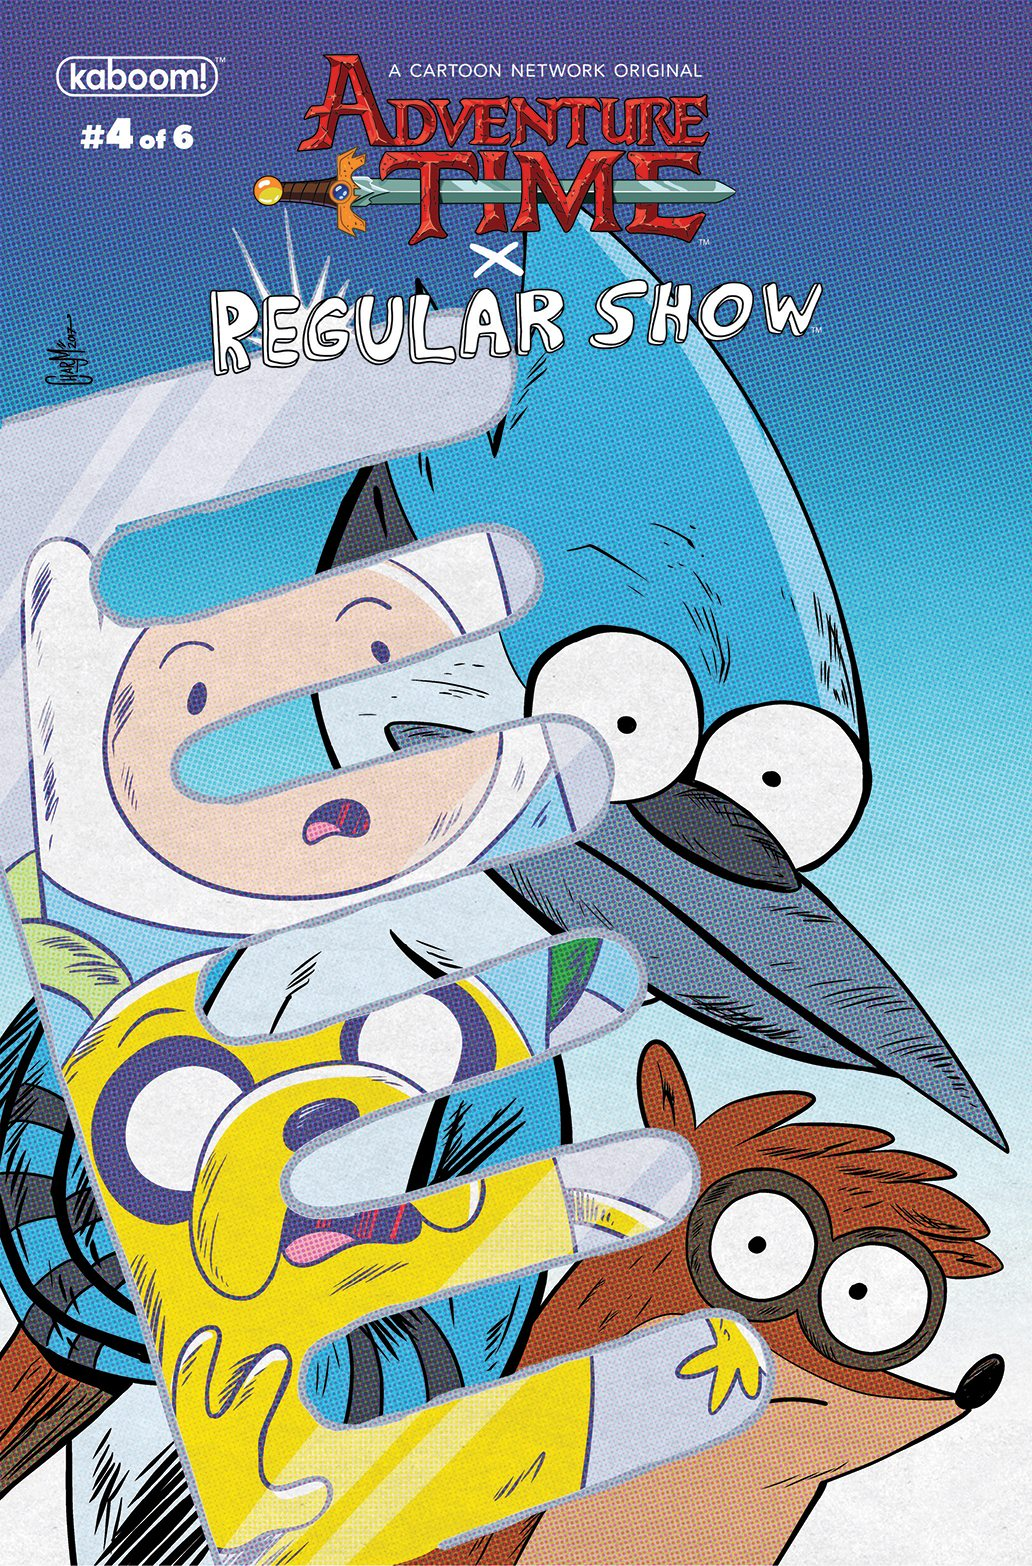 preview of adventure time regular show 4